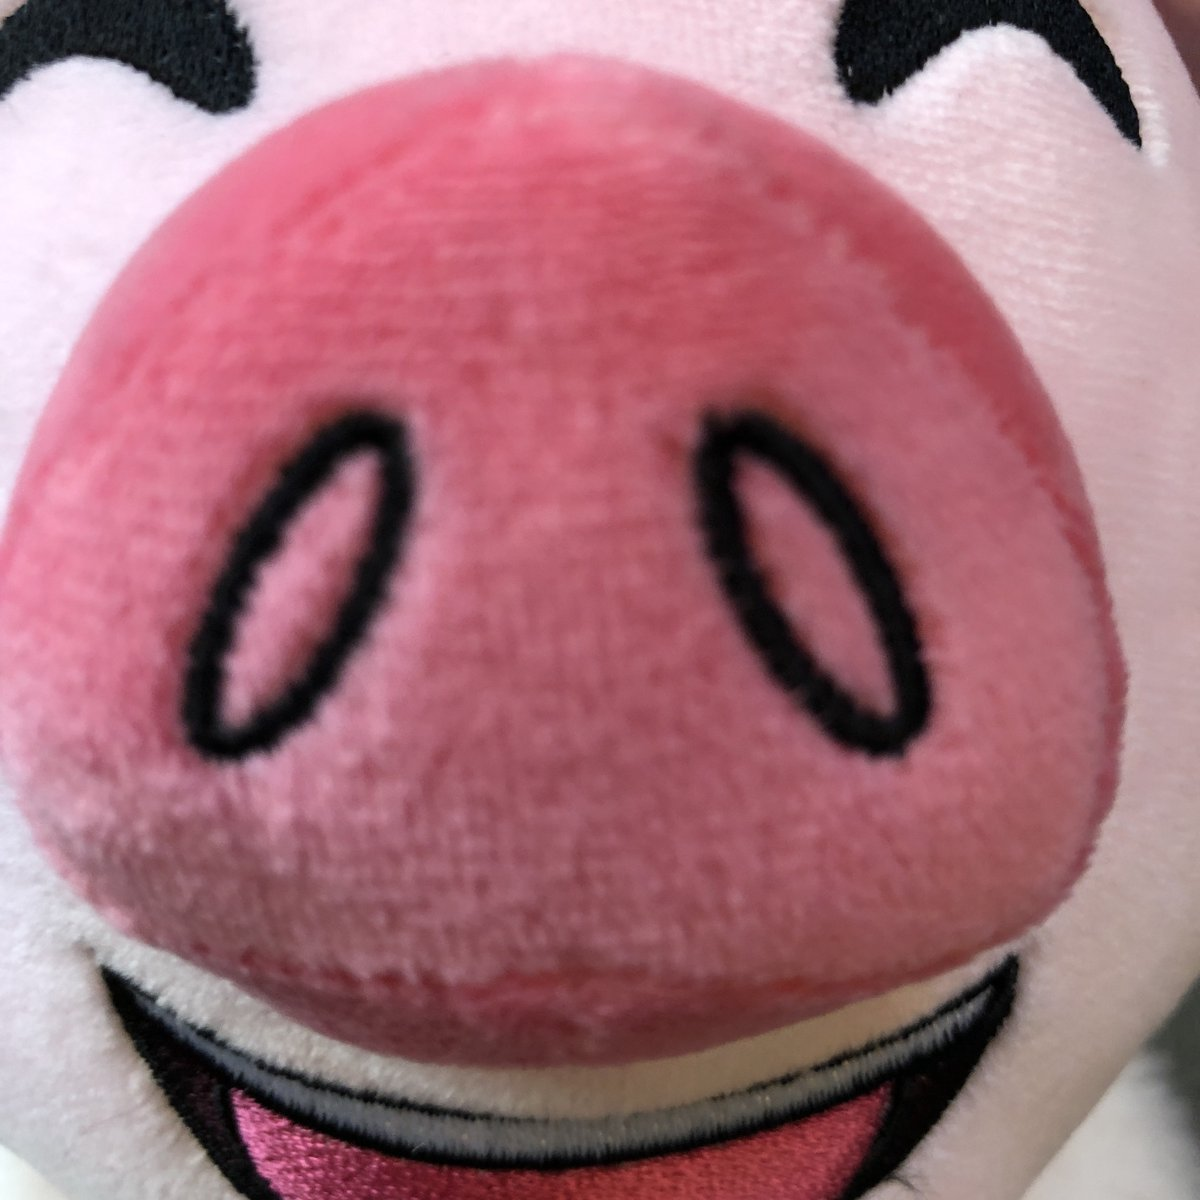 @Technothepig hello its me 🐽  congrats to the first 15 winners!   @maddiewuztakn @EveyGentry @FUNDYBRAlNROT @Cadeyrnn @GwenderDragon @notmaggsyt @Crowleyisgay @AXE0FENDER @mew_zona @unknown_is_AAAA @IMentallystable @oppise_boopsie @J_DoodleJewels @notsotoxictokyo @basically_Marz